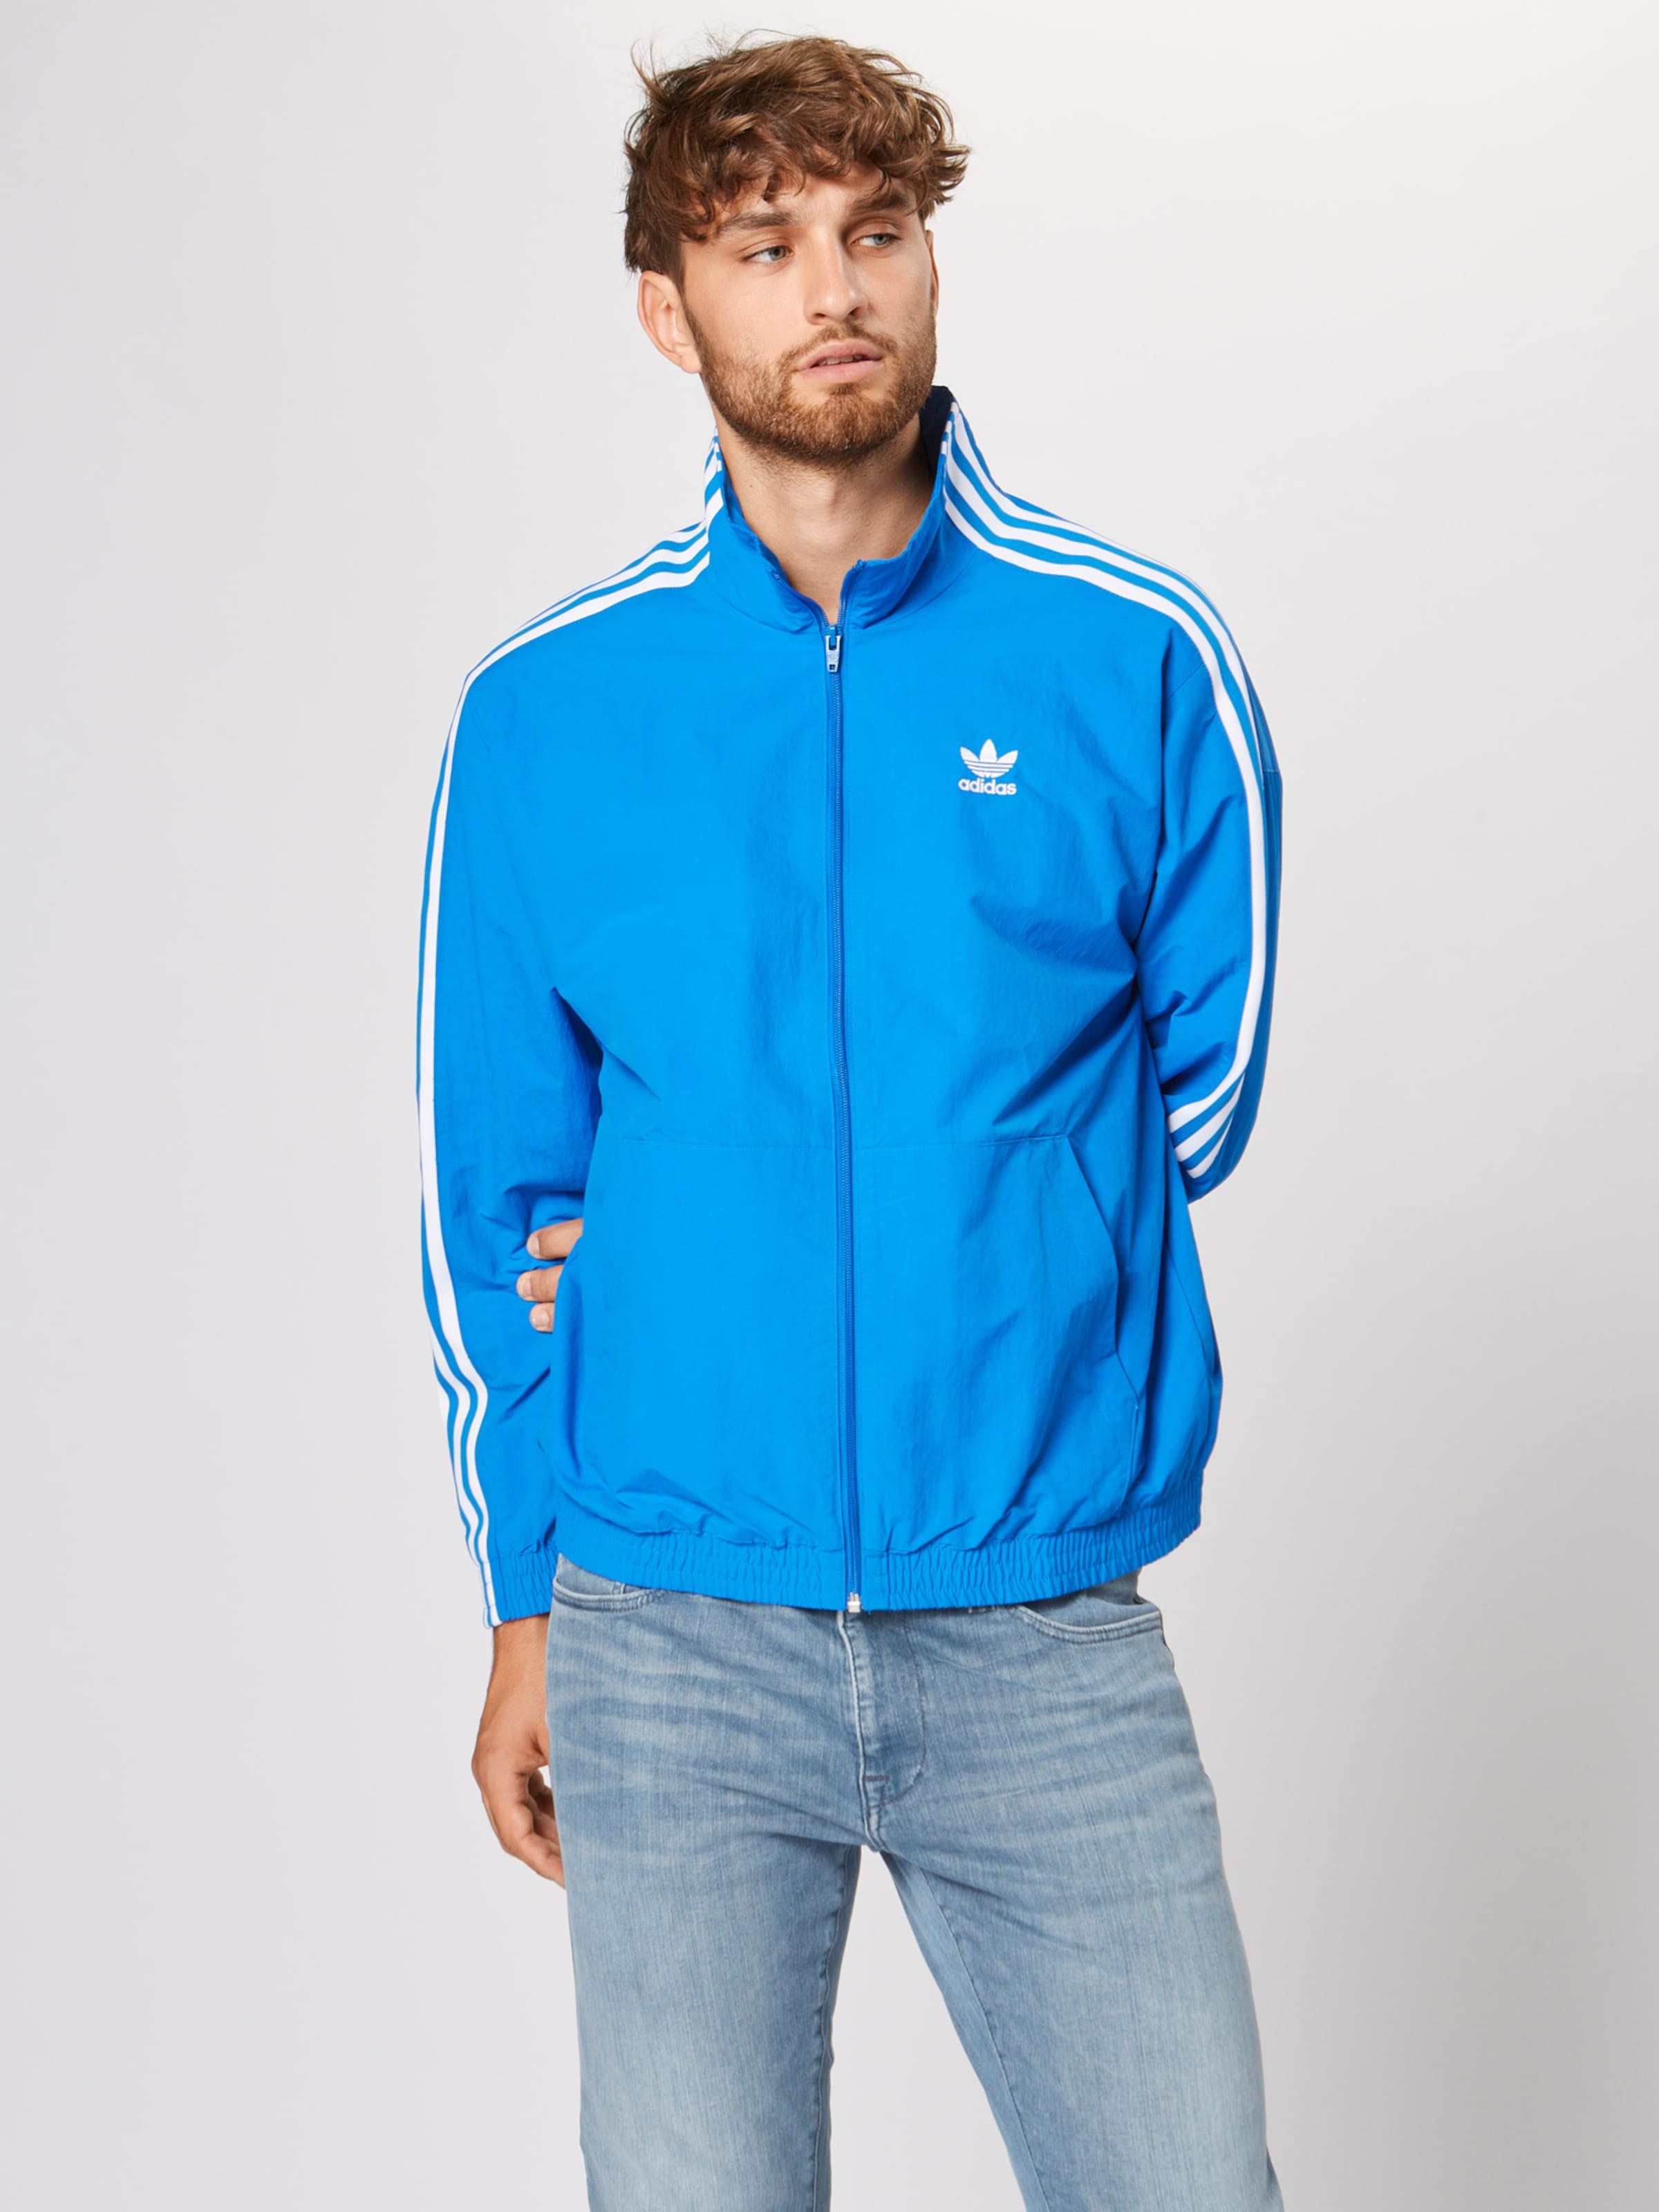 In Adidas Originals Tt' Blau 'lock Sweatjacke Up ZOPkiXu